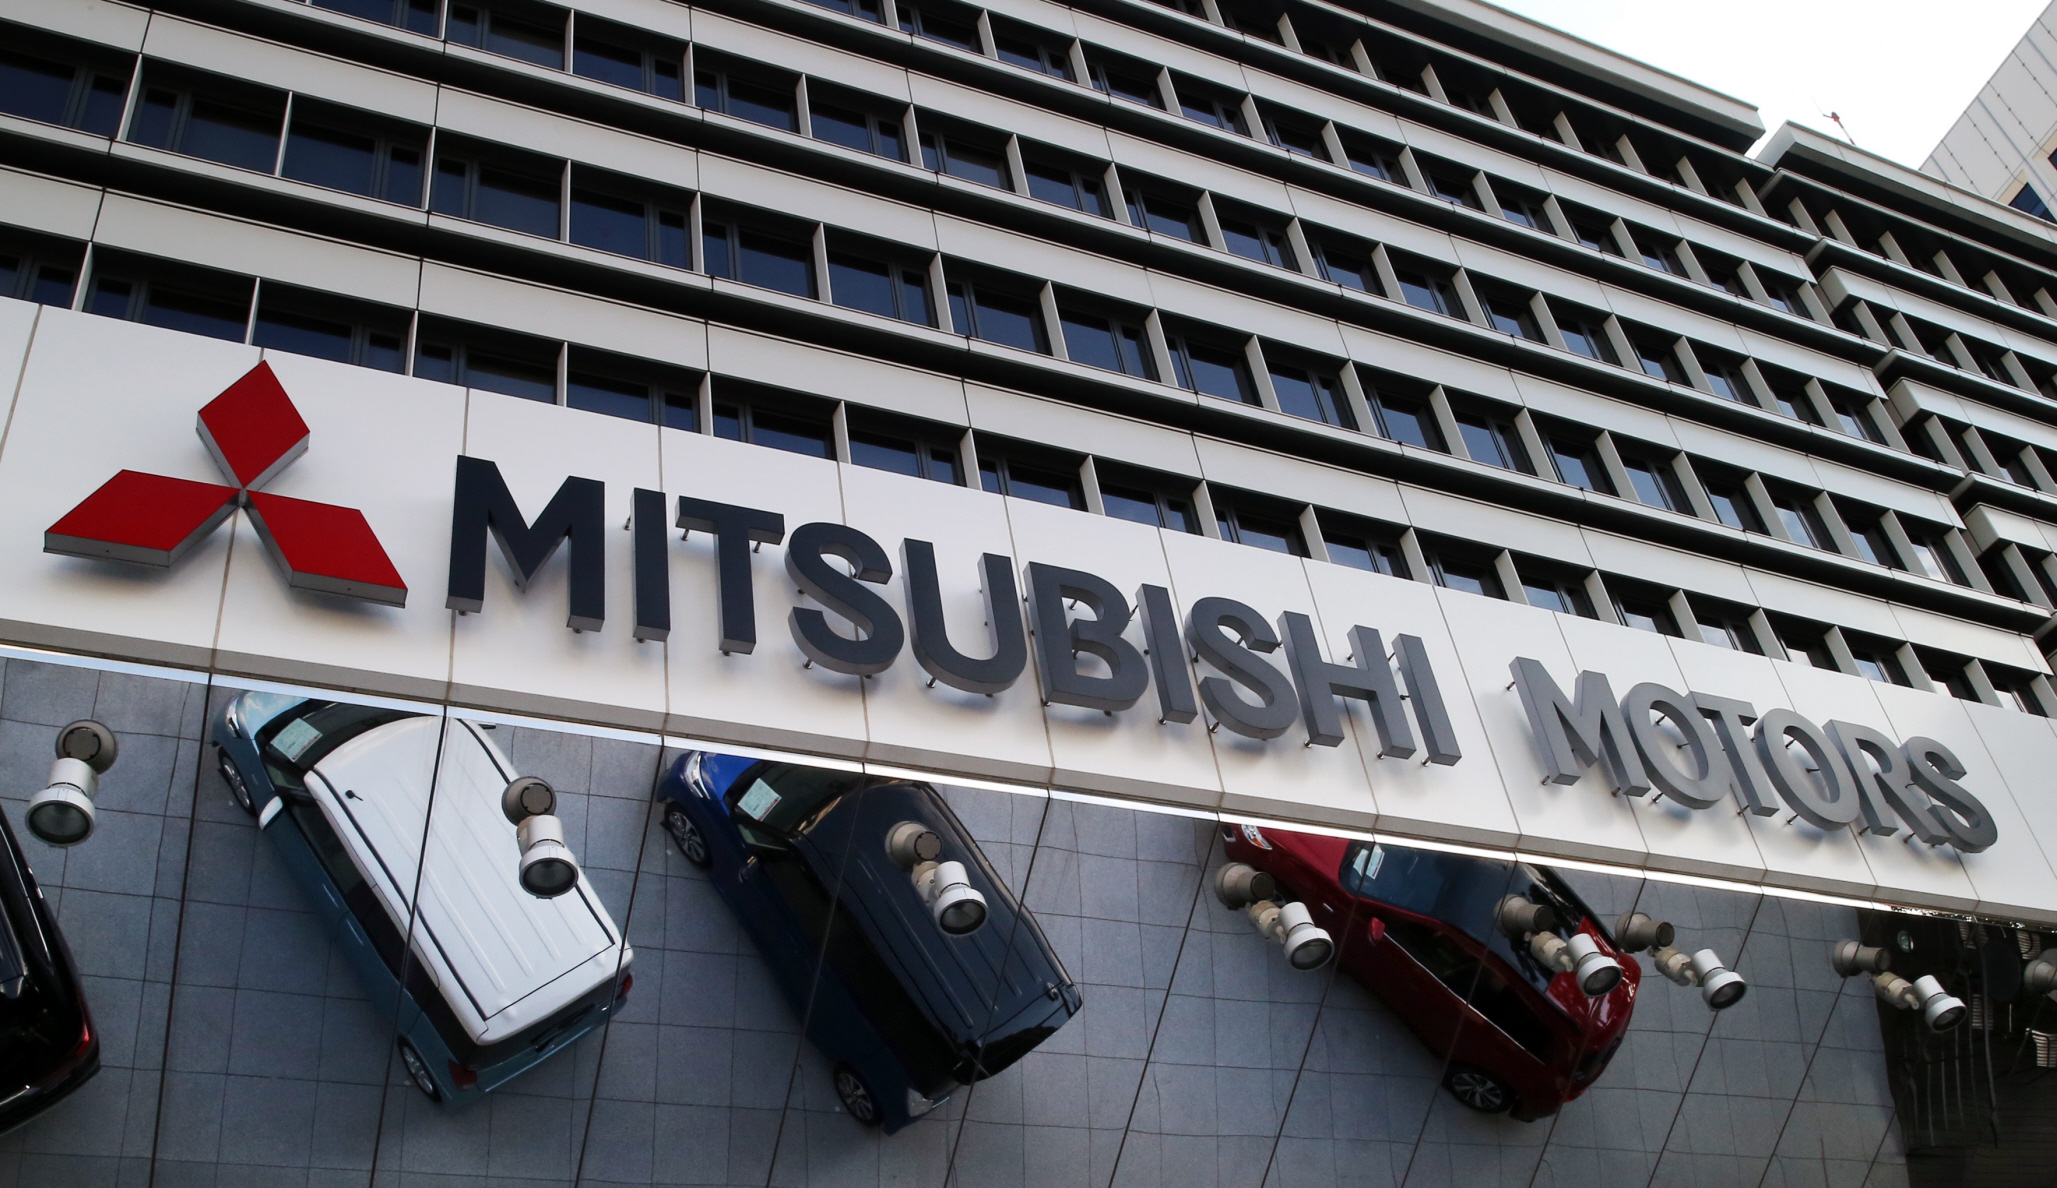 Mitsubishi Motors Likely To Post 3bn Yen Operating Profit Nikkei